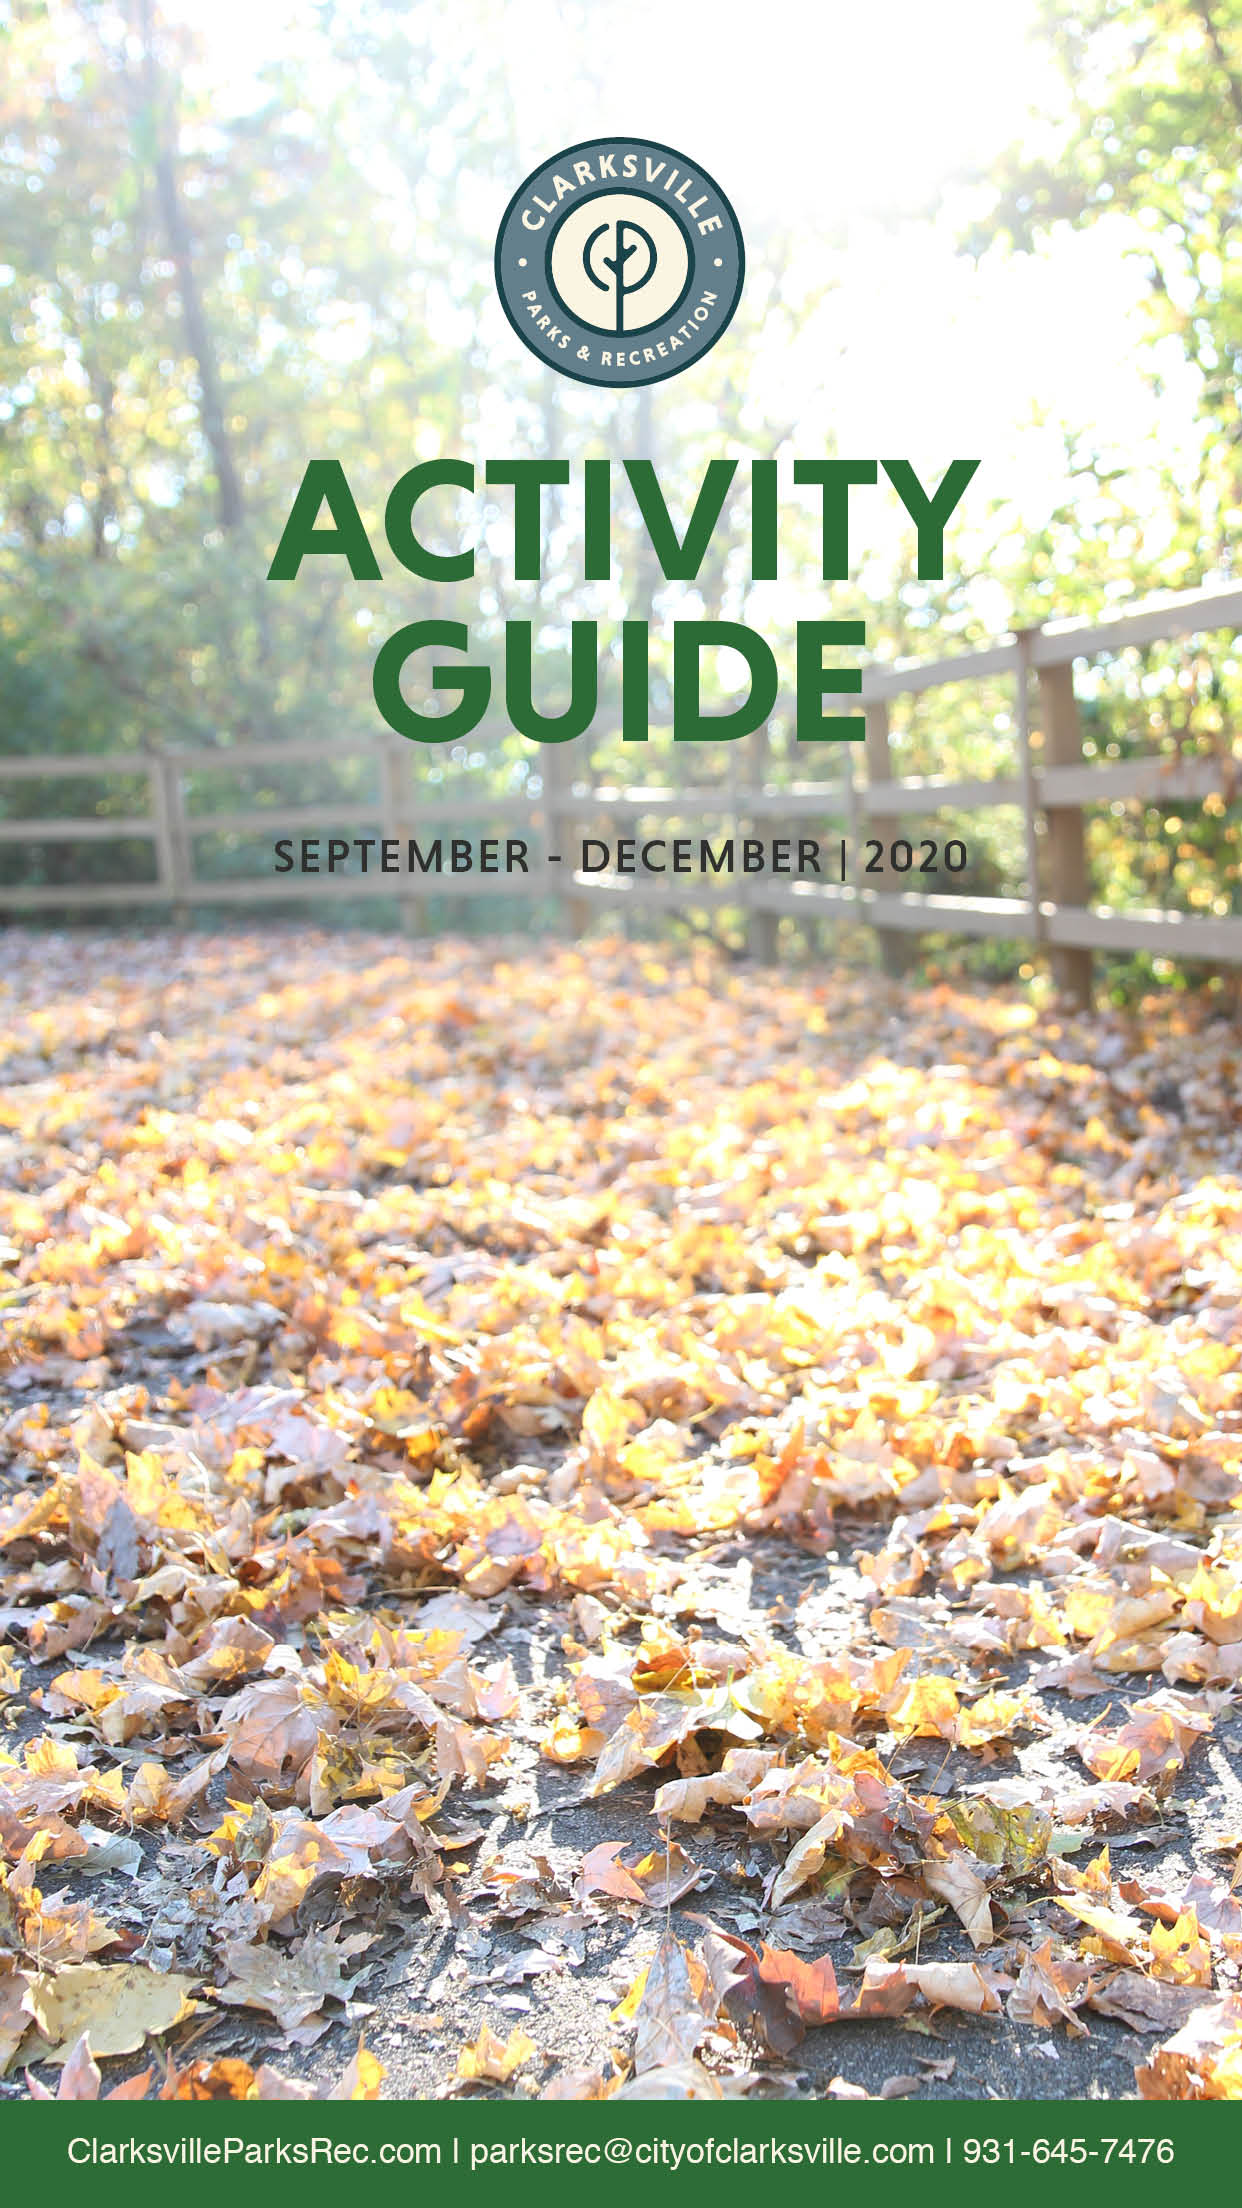 Activity Guide cover